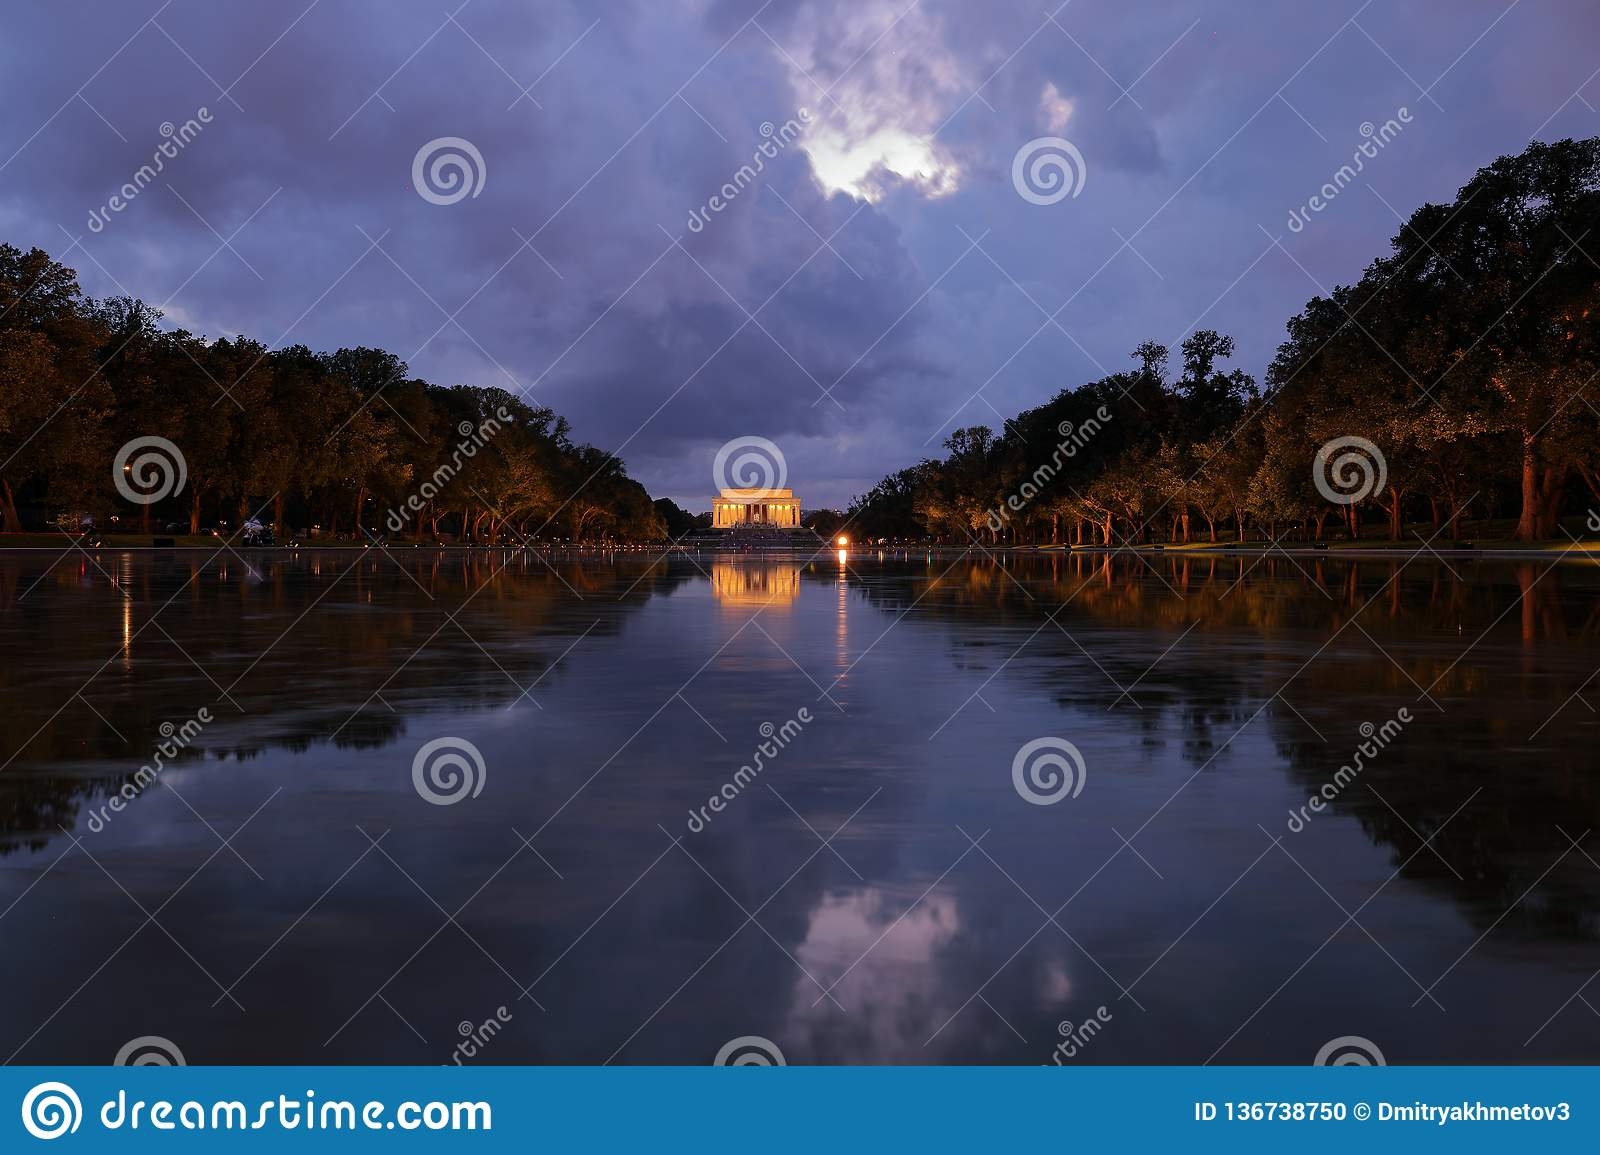 View of Lincoln Memorial and its reflection in Reflection pool at night with dramatic sky.